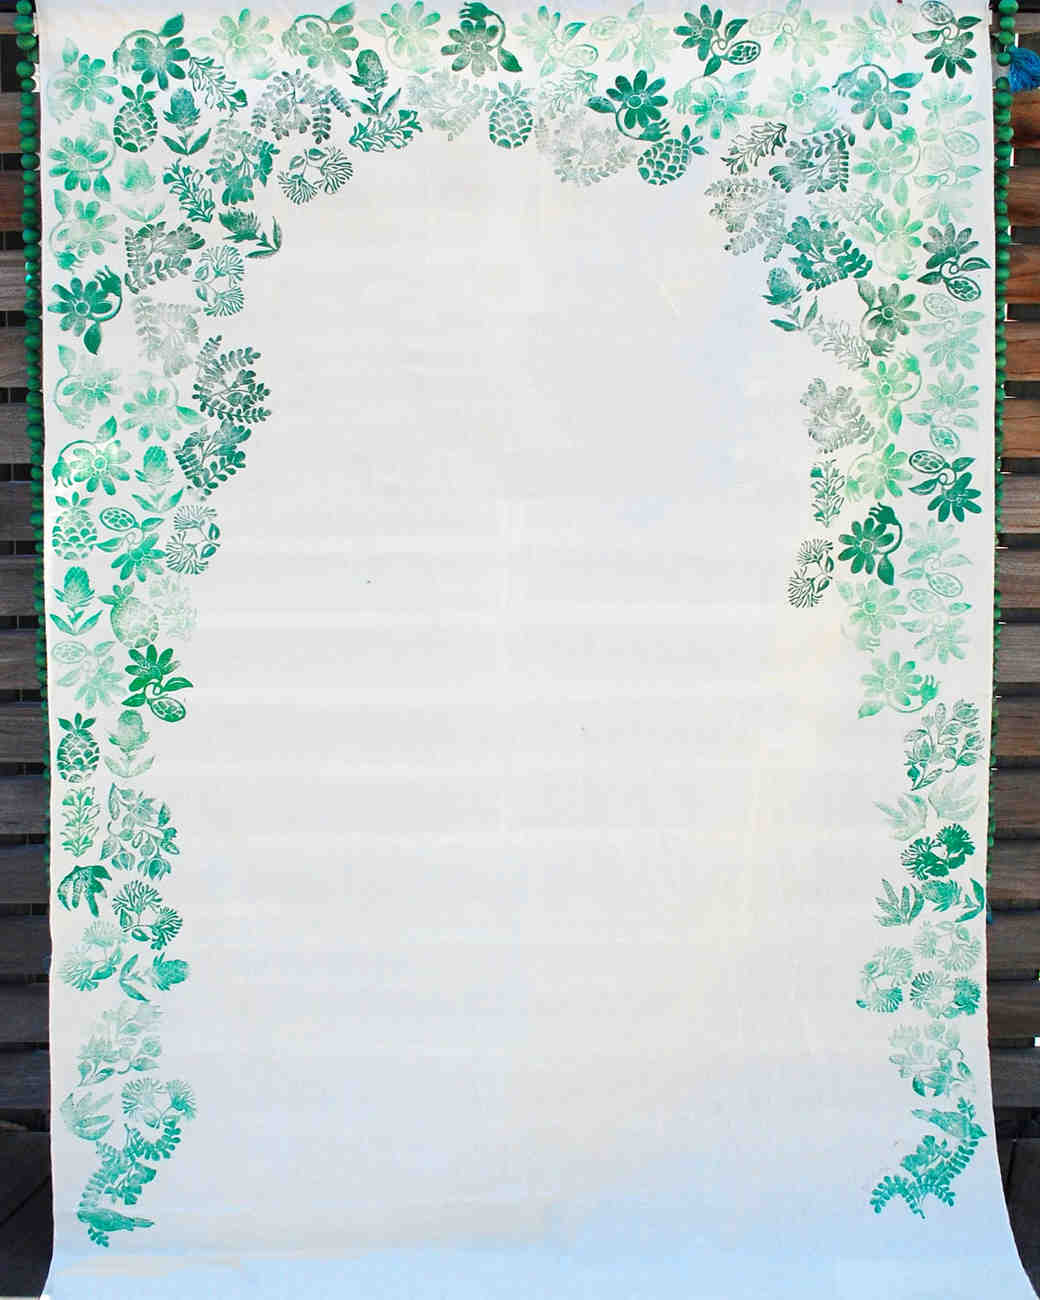 stamped-wedding-backdrop-3-0415.jpg